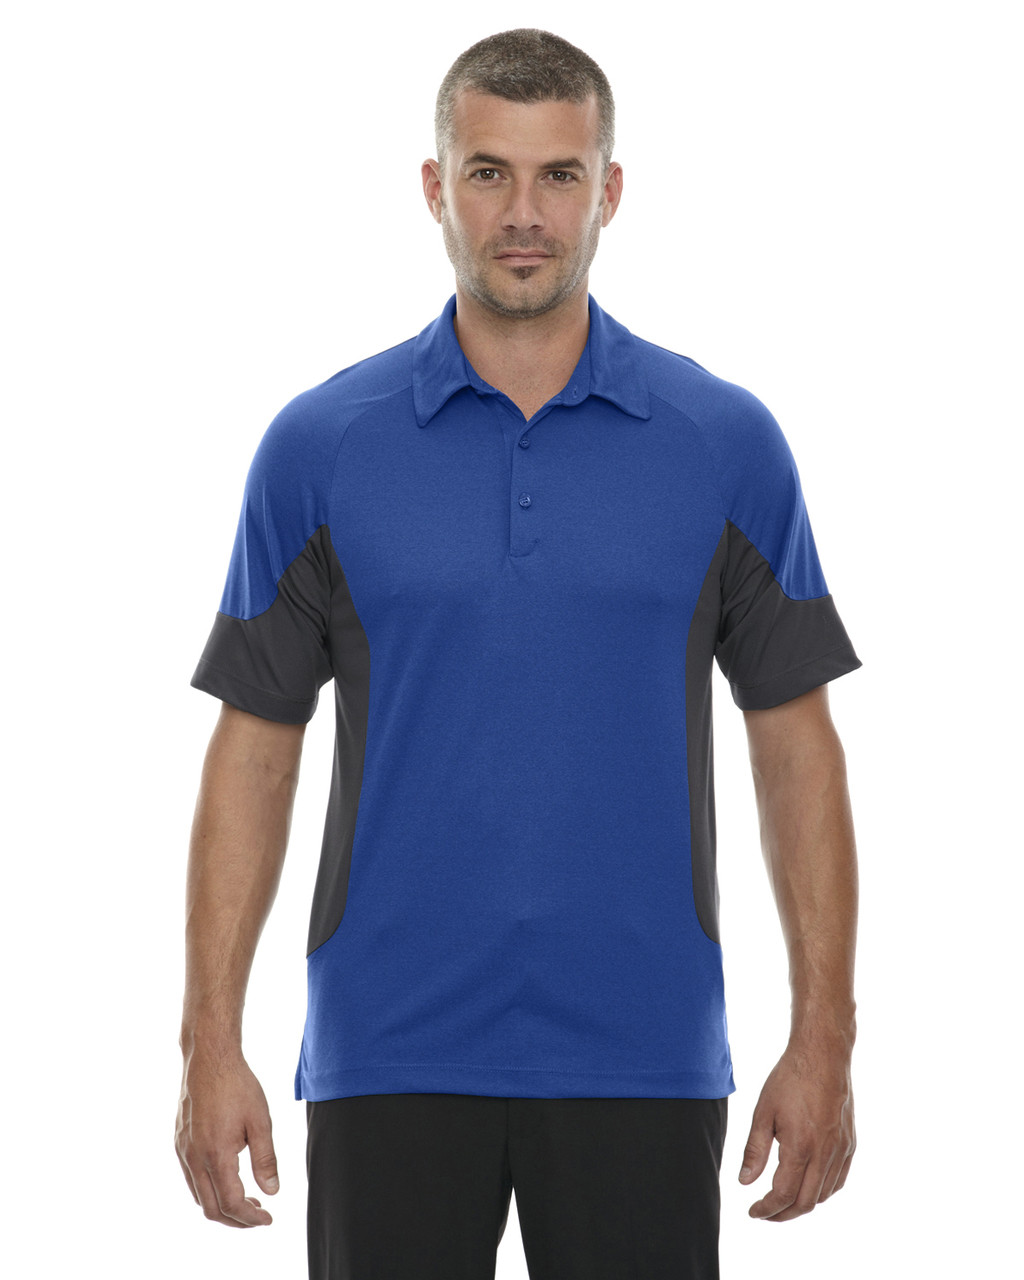 Nautical Blue - 88677 North End Sport Red Refresh UTK Coffee Performance Jersey Polo Shirt